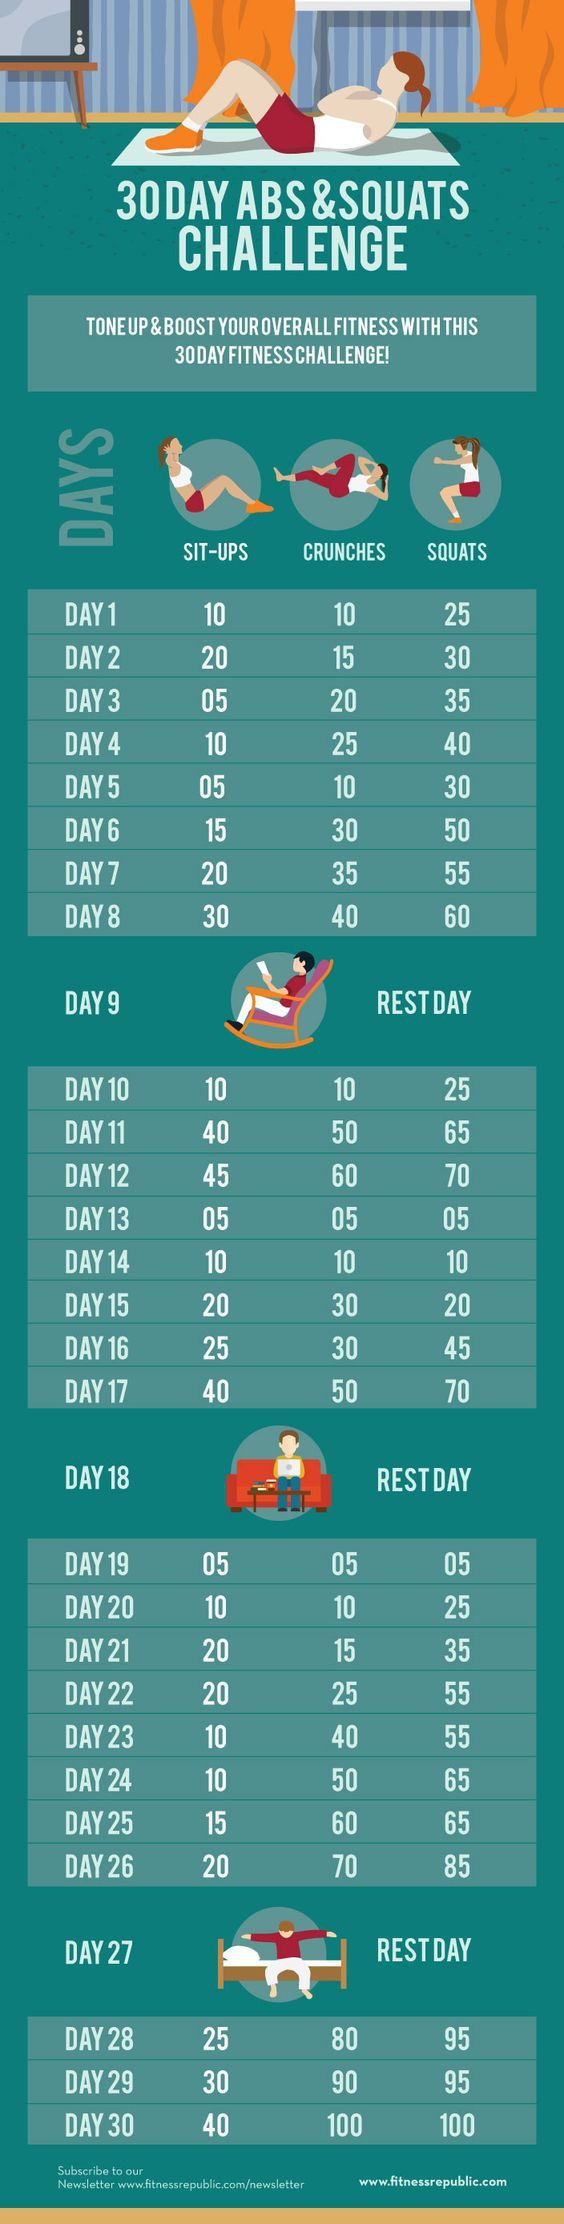 Give your body some attention and take up this 30 day abs and squat challenge and boost your core, leg and butt muscles and body strength to the max! The three workouts involved in this challenge will certainly assist you achieve those hot abs and lower body. Build up your core muscle till you reach your goal on the 30th day!: